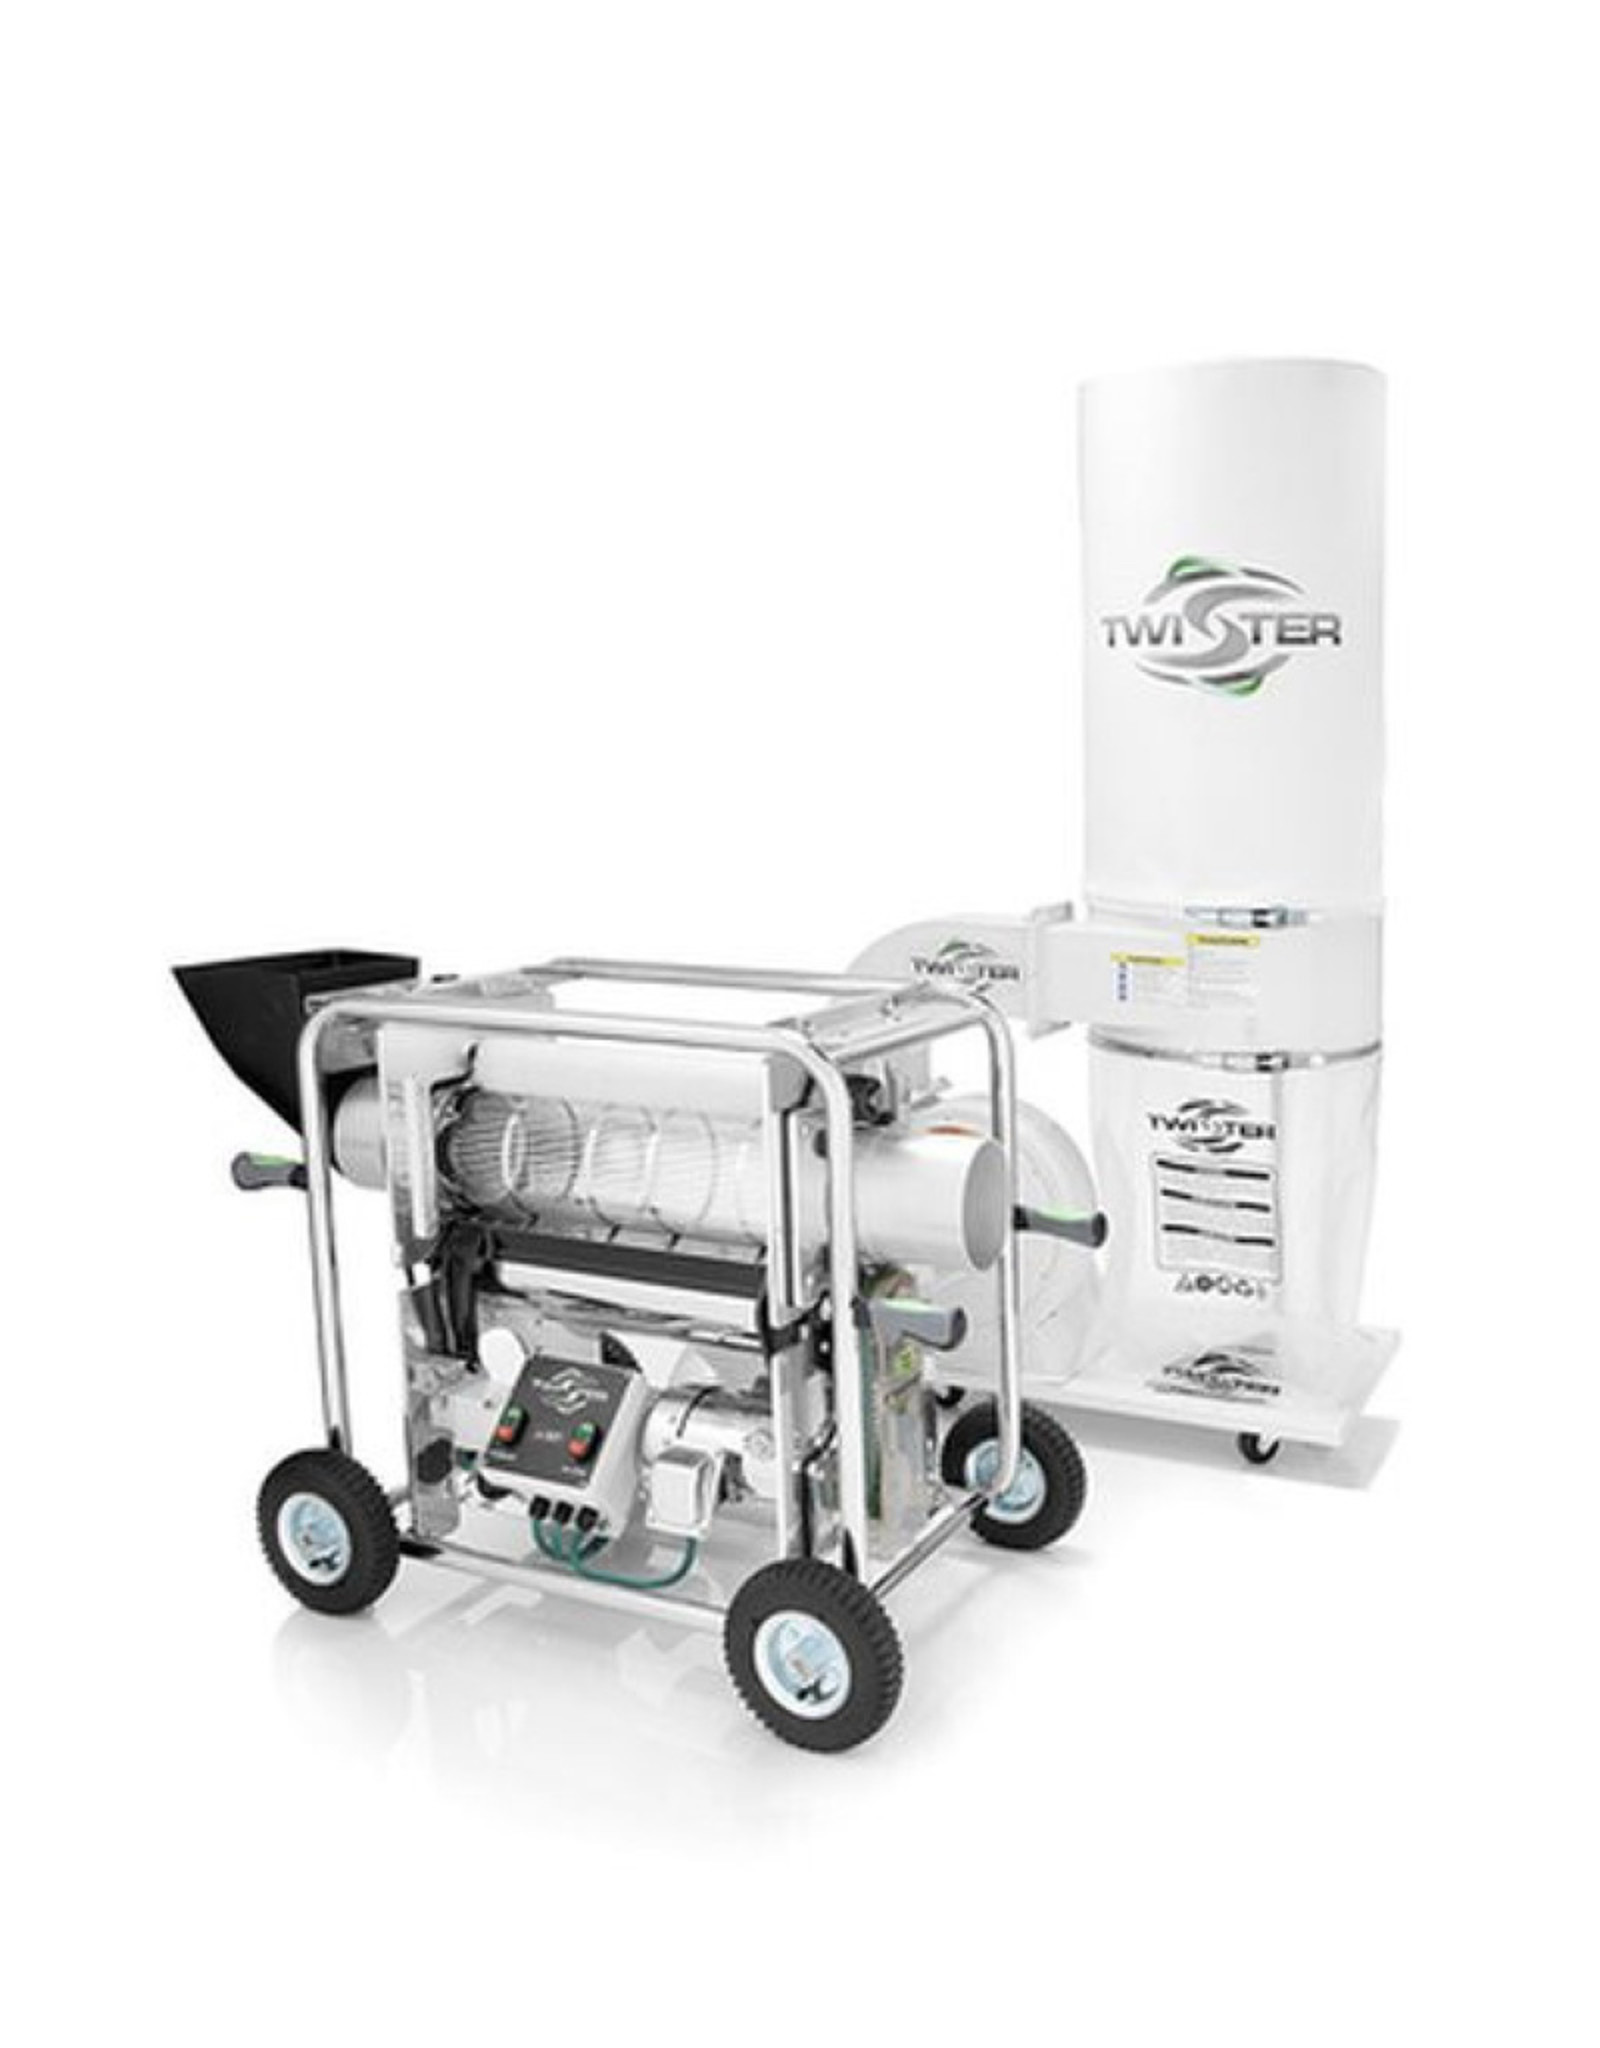 TWISTER TWISTER T2 TRIMMER